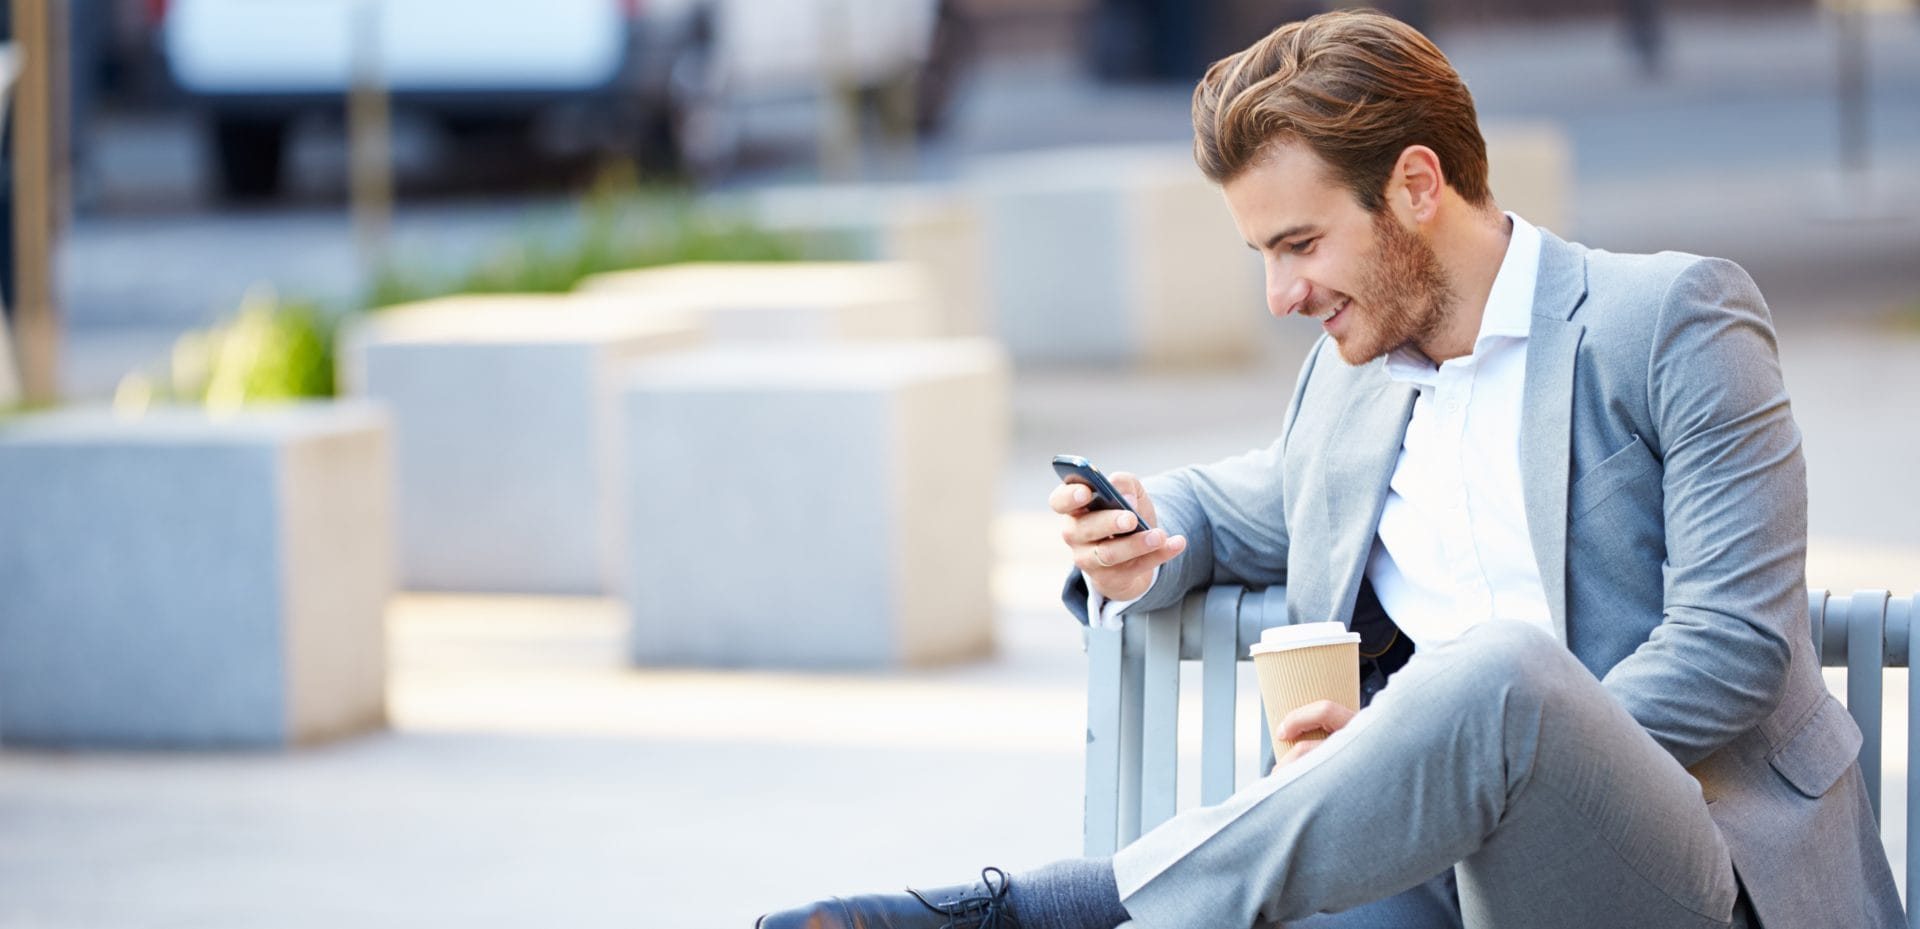 guy-in-suit-on-phone-5000x